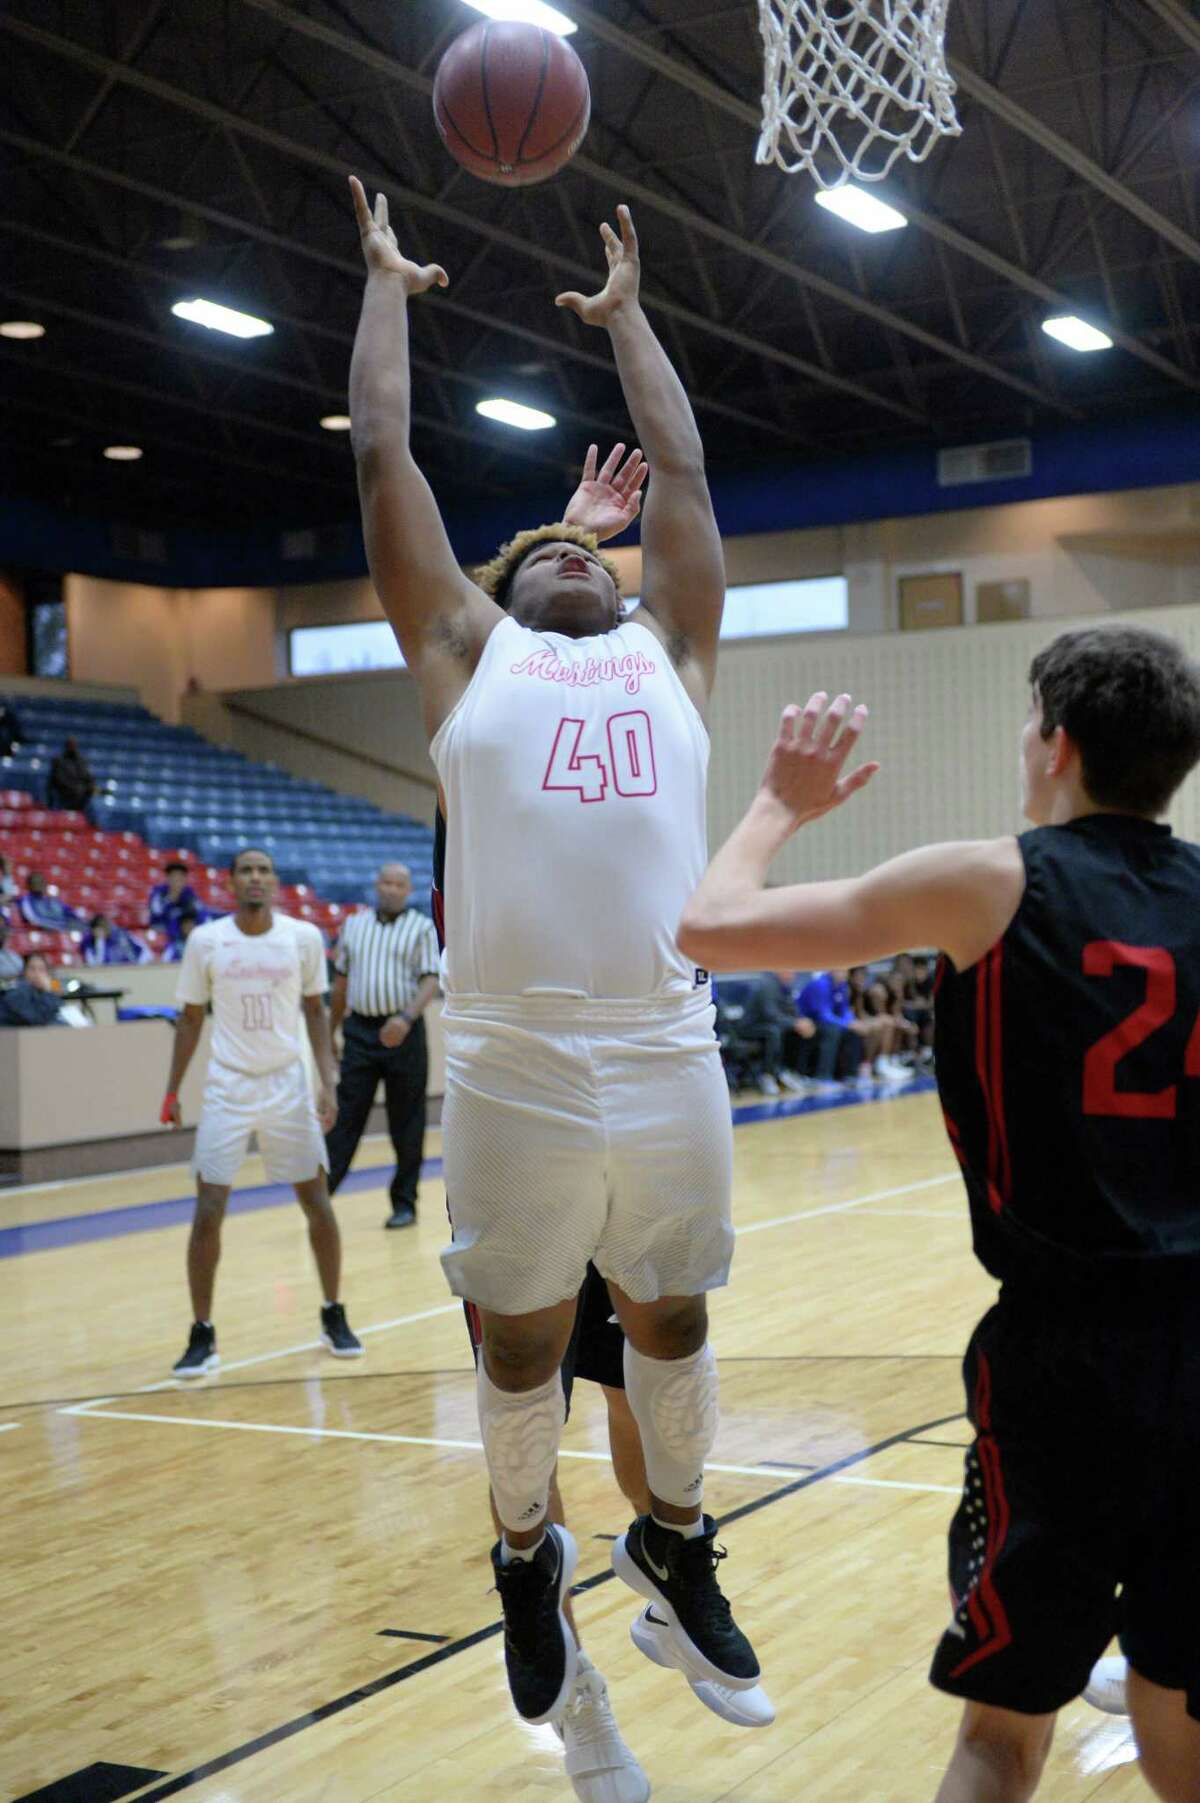 Dequarius Gibson (40) of Westfield grabs a rebound during pool play in the Fort Bend ISD Balfour Basketball Tournament between the Westfield Mustangs and the Oak Ridge War Eagles on Thursday December 7, 2017 at Wheeler Field House, Sugar Land, TX